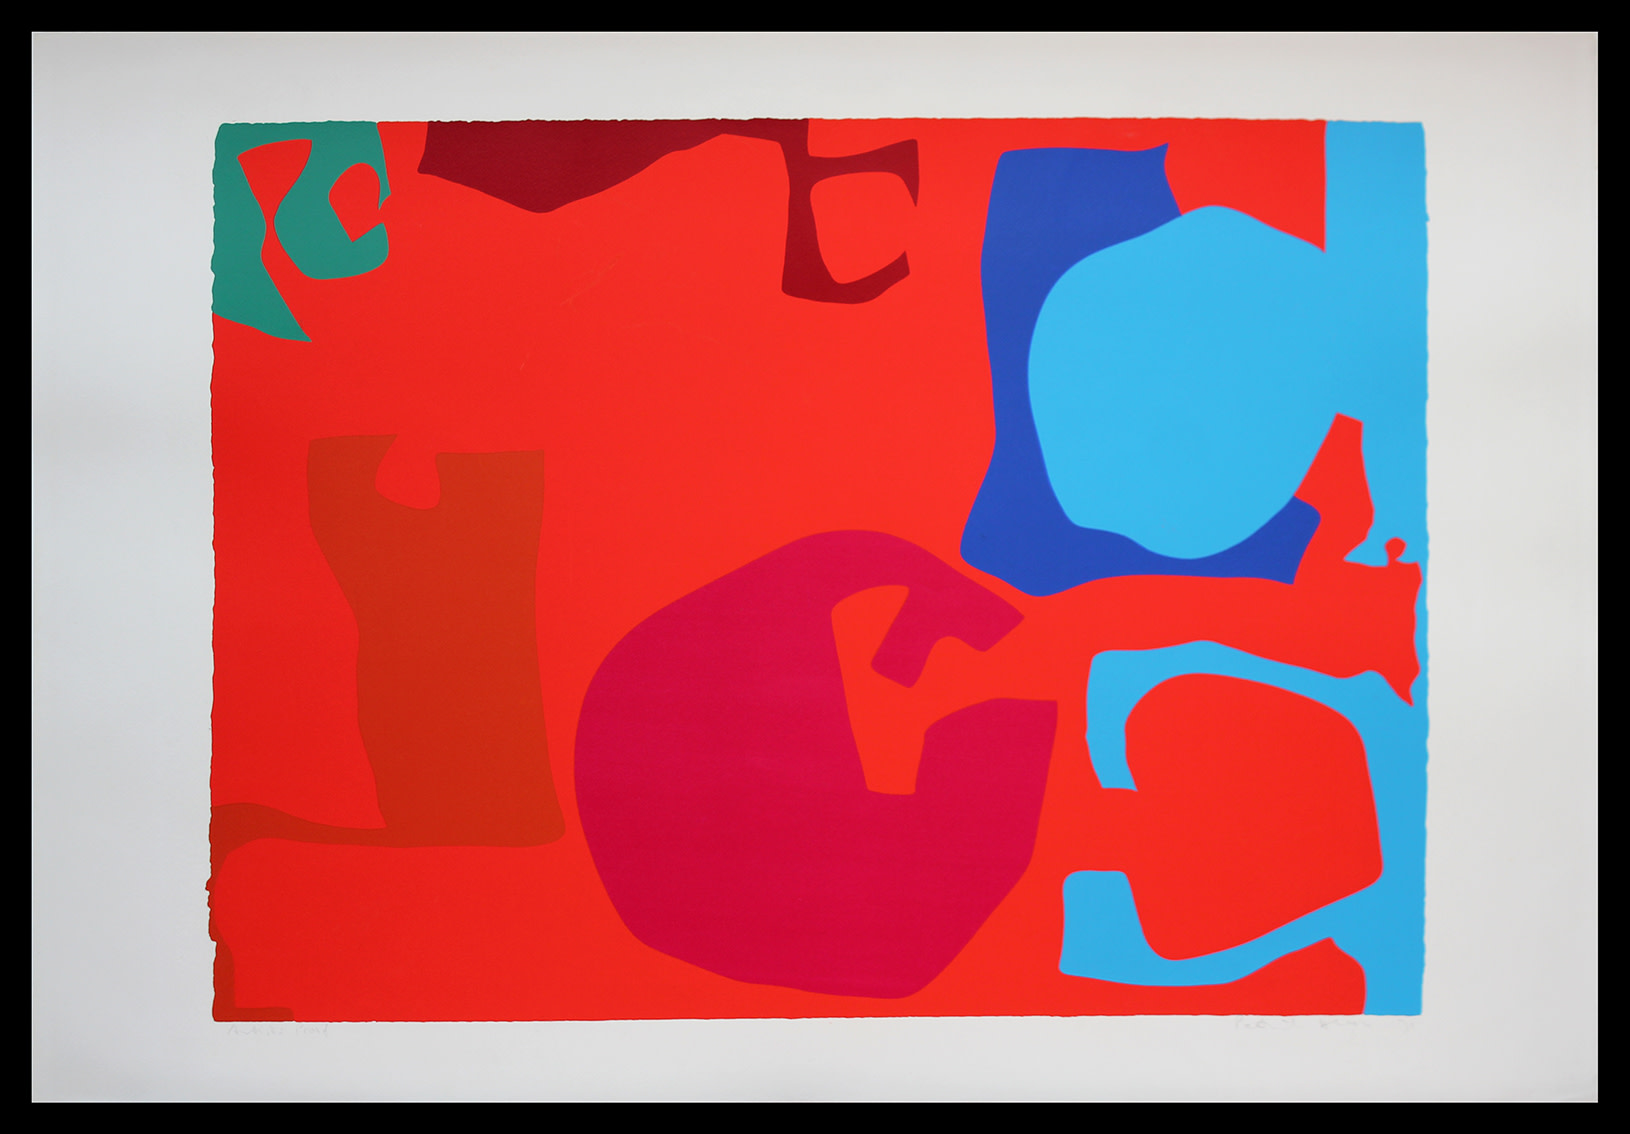 <span class=&#34;link fancybox-details-link&#34;><a href=&#34;/artists/93-patrick-heron-cbe/works/3971-patrick-heron-cbe-untitled-1971/&#34;>View Detail Page</a></span><div class=&#34;artist&#34;><strong>Patrick Heron CBE</strong></div> 1920 – 1999 <div class=&#34;title&#34;>Untitled, 1971</div> <div class=&#34;signed_and_dated&#34;>signed and dated '71' in pencil</div> <div class=&#34;medium&#34;>silkscreen print in colours on wove paper, with full margins, <br /> </div> <div class=&#34;dimensions&#34;>image: 59 x 79 cm (23 2/8 x 31 1/8 in.)<br /> sheet: 71 x 102 cm (28 x 40 1/8 in.)</div> <div class=&#34;edition_details&#34;>Artist's Proof aside from the edition of 75</div><div class=&#34;copyright_line&#34;>© The Estate of Patrick Heron</div>